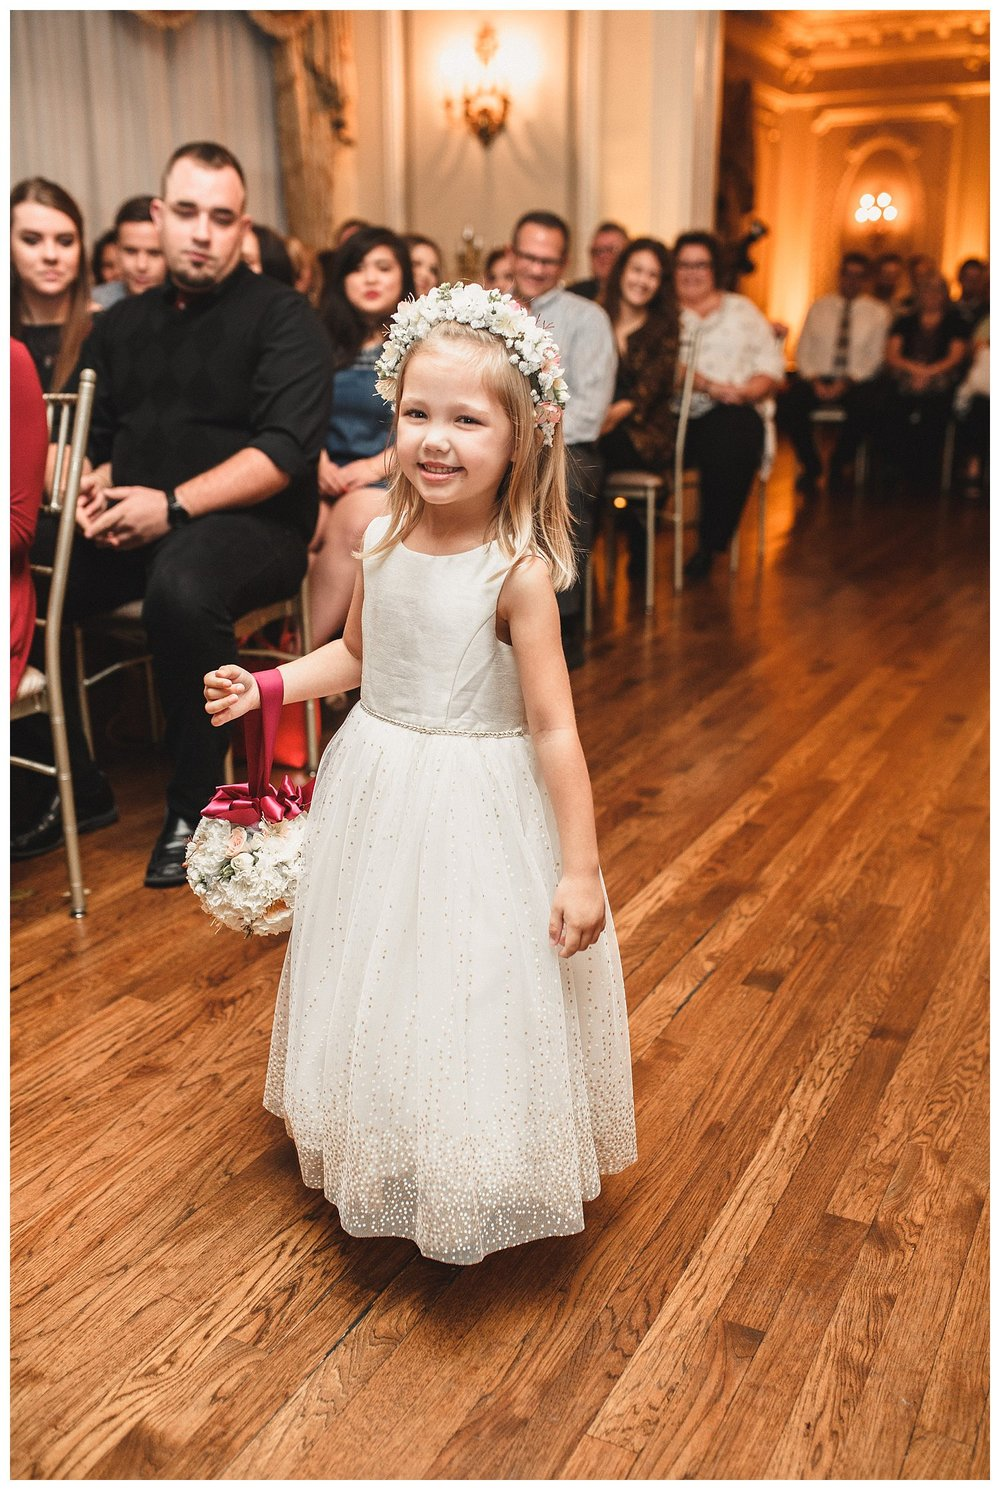 Kelsey_Diane_Photography_Loose_Mansion_Wedding_Photography_Kansas_City_Victor_Lyndsay_0141.jpg